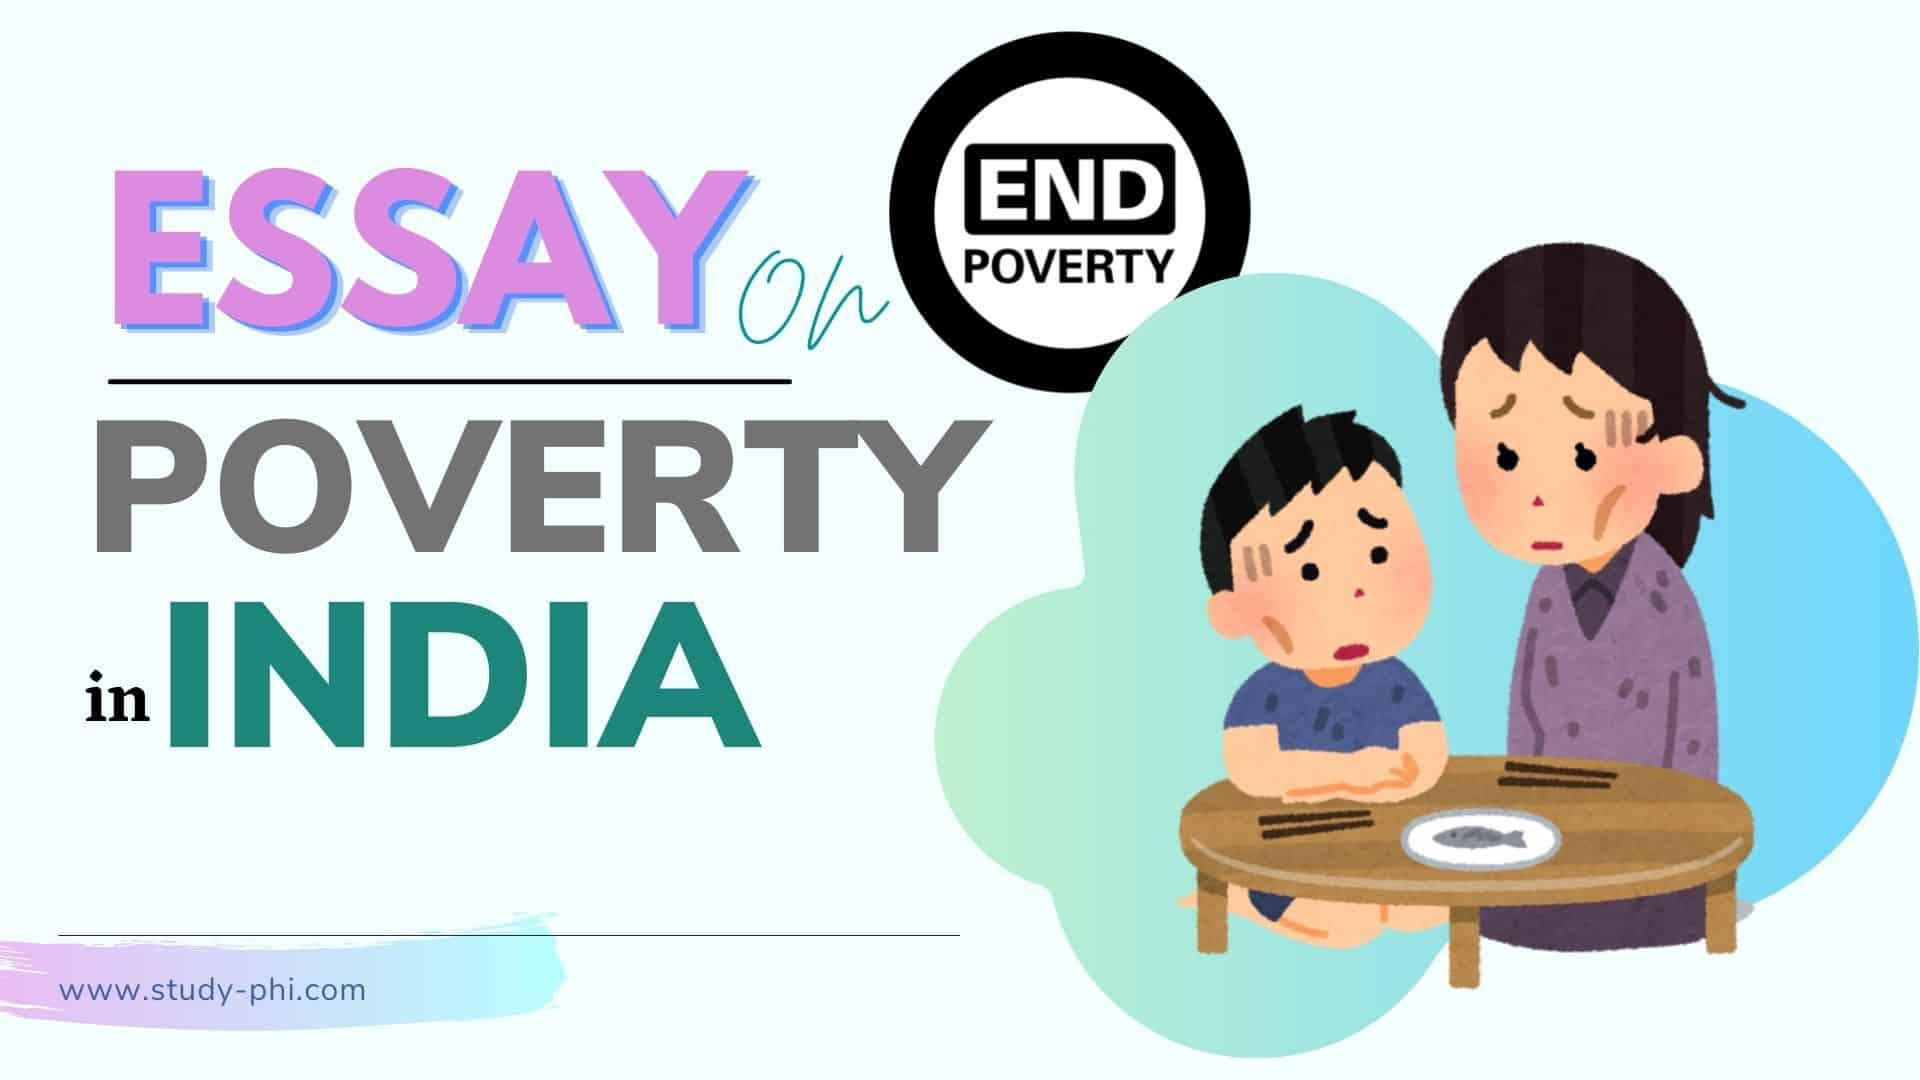 Essay on Poverty in India